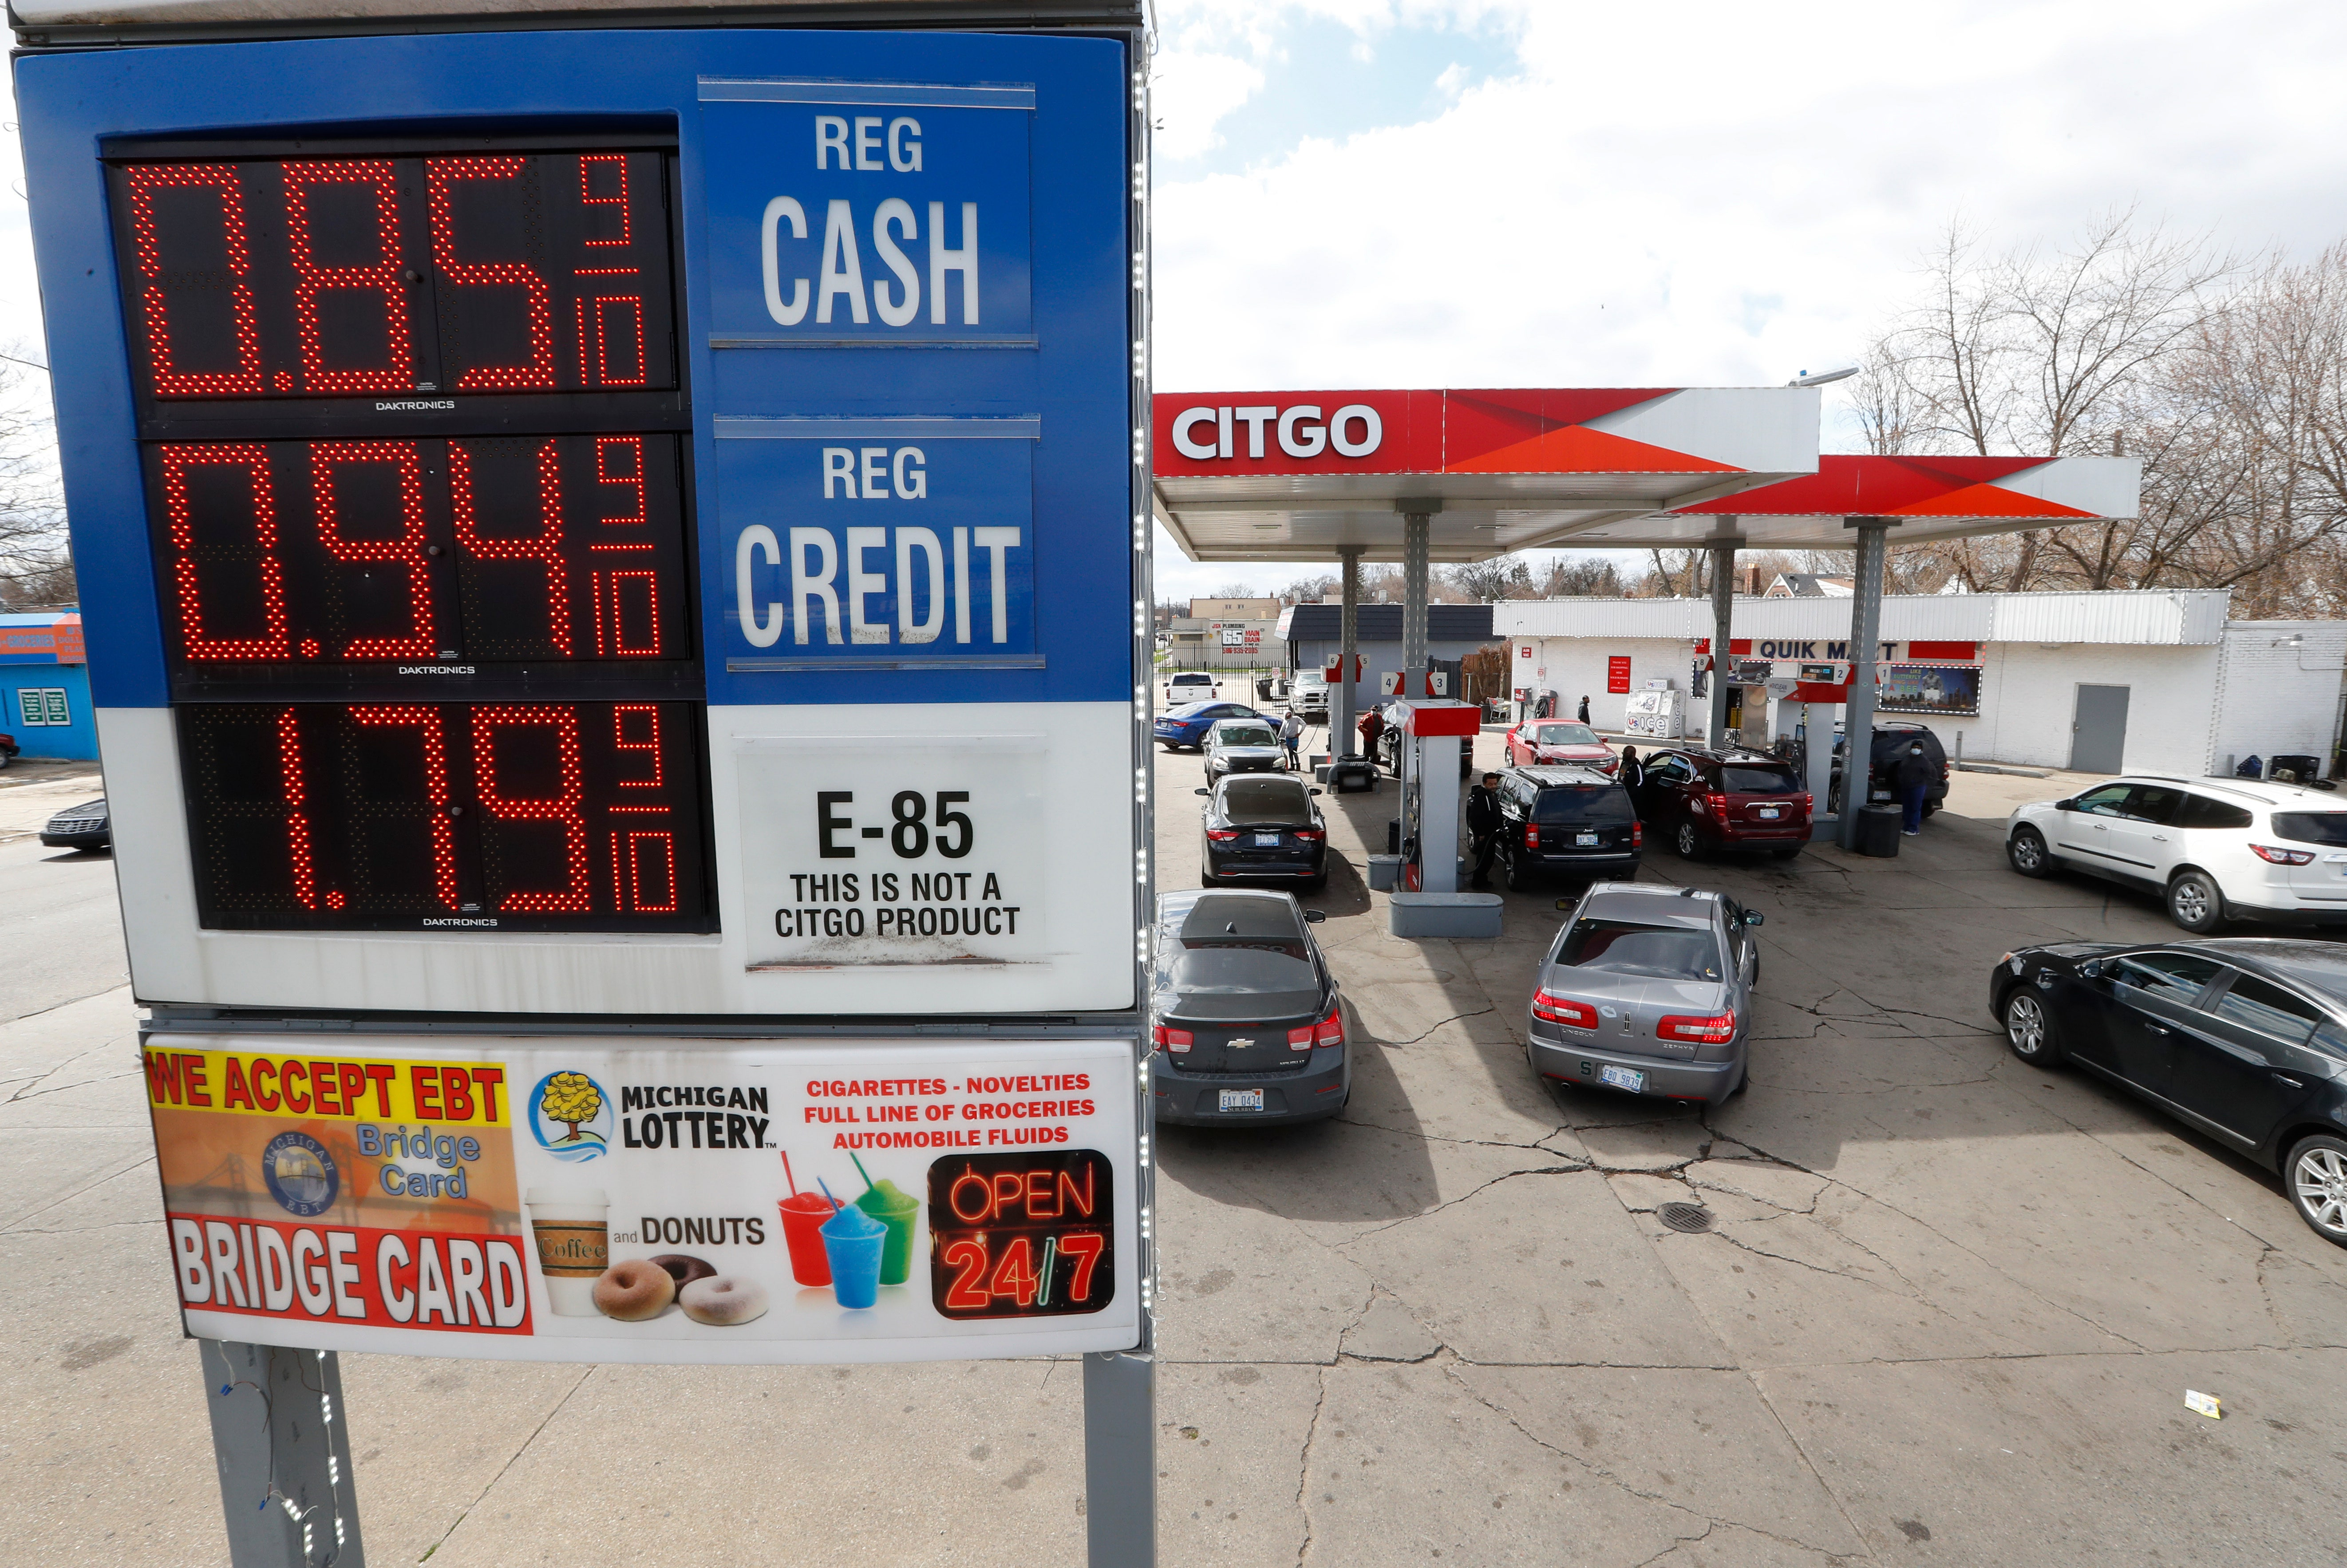 Oil prices are negative, but prices at the pump won't follow